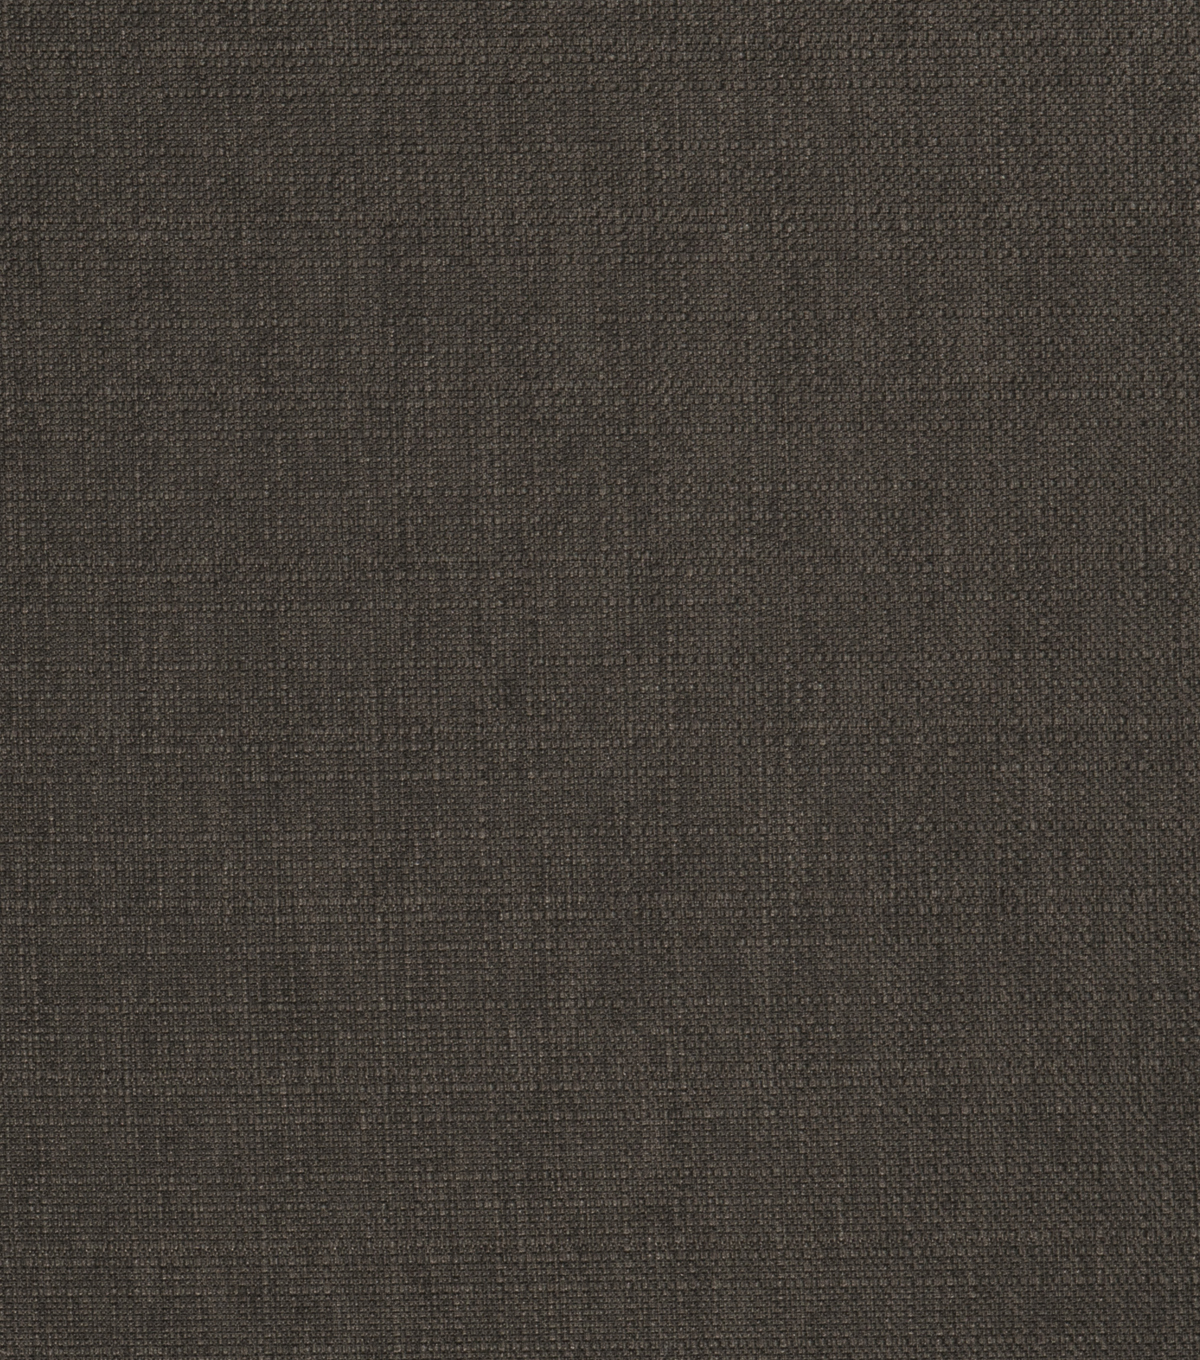 Home Decor 8x8 Fabric Swatch-Eaton Square Roberta Charcoal